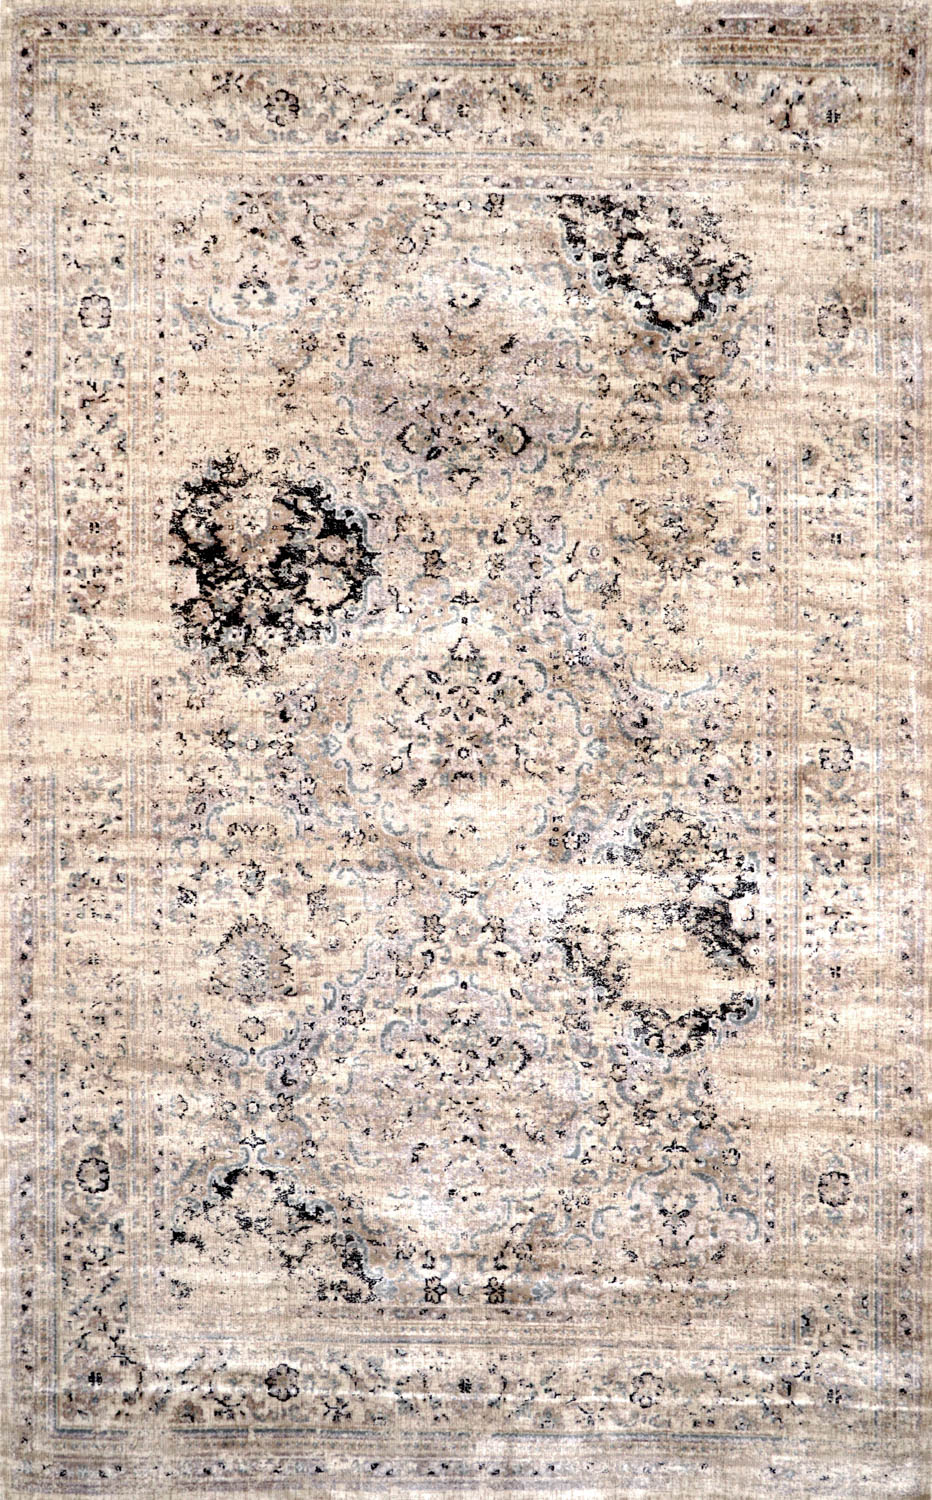 Beaumont Panel Rug how to choose a rug